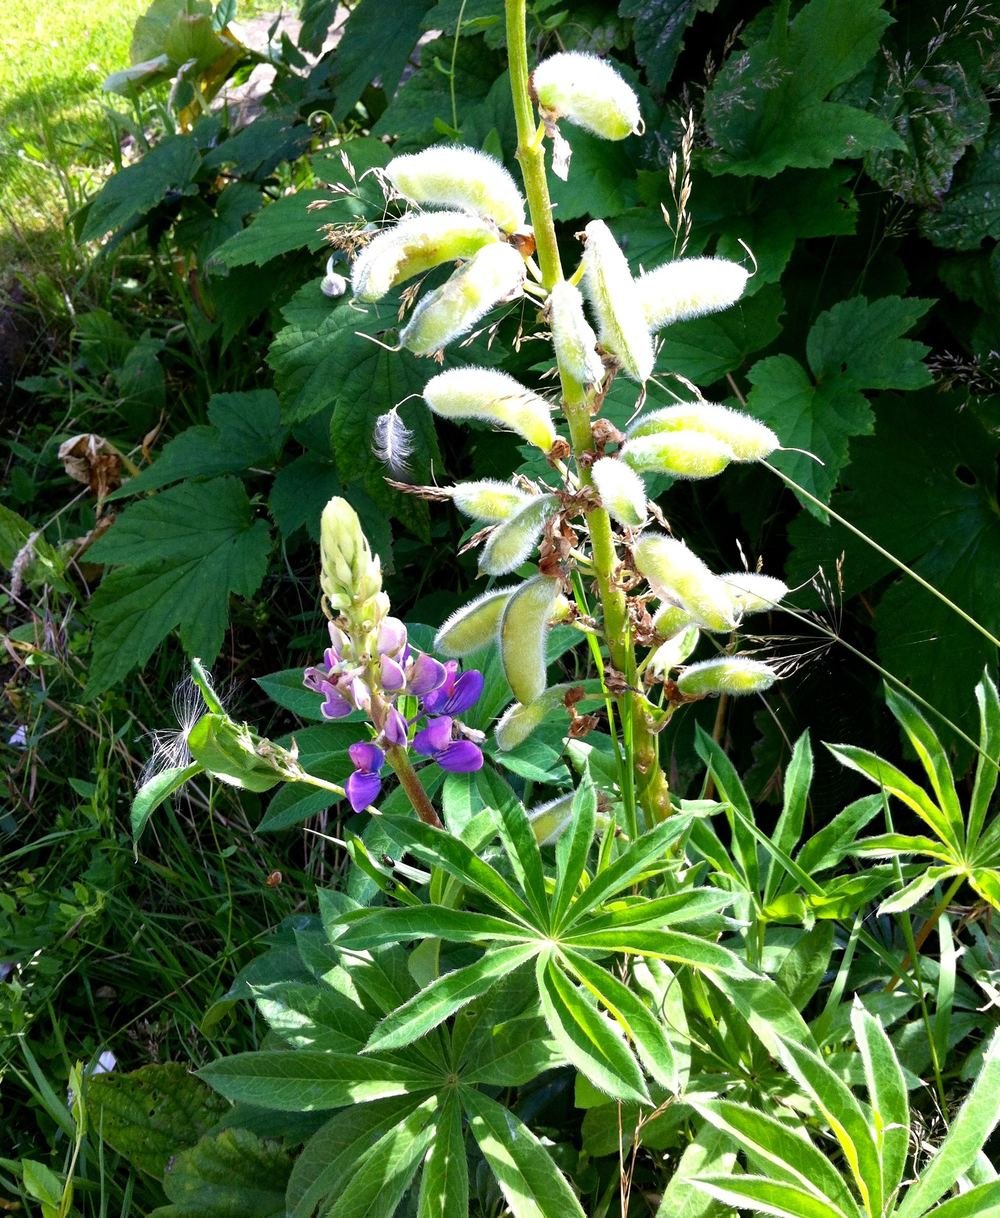 Lupins in flower and with furry seed pods